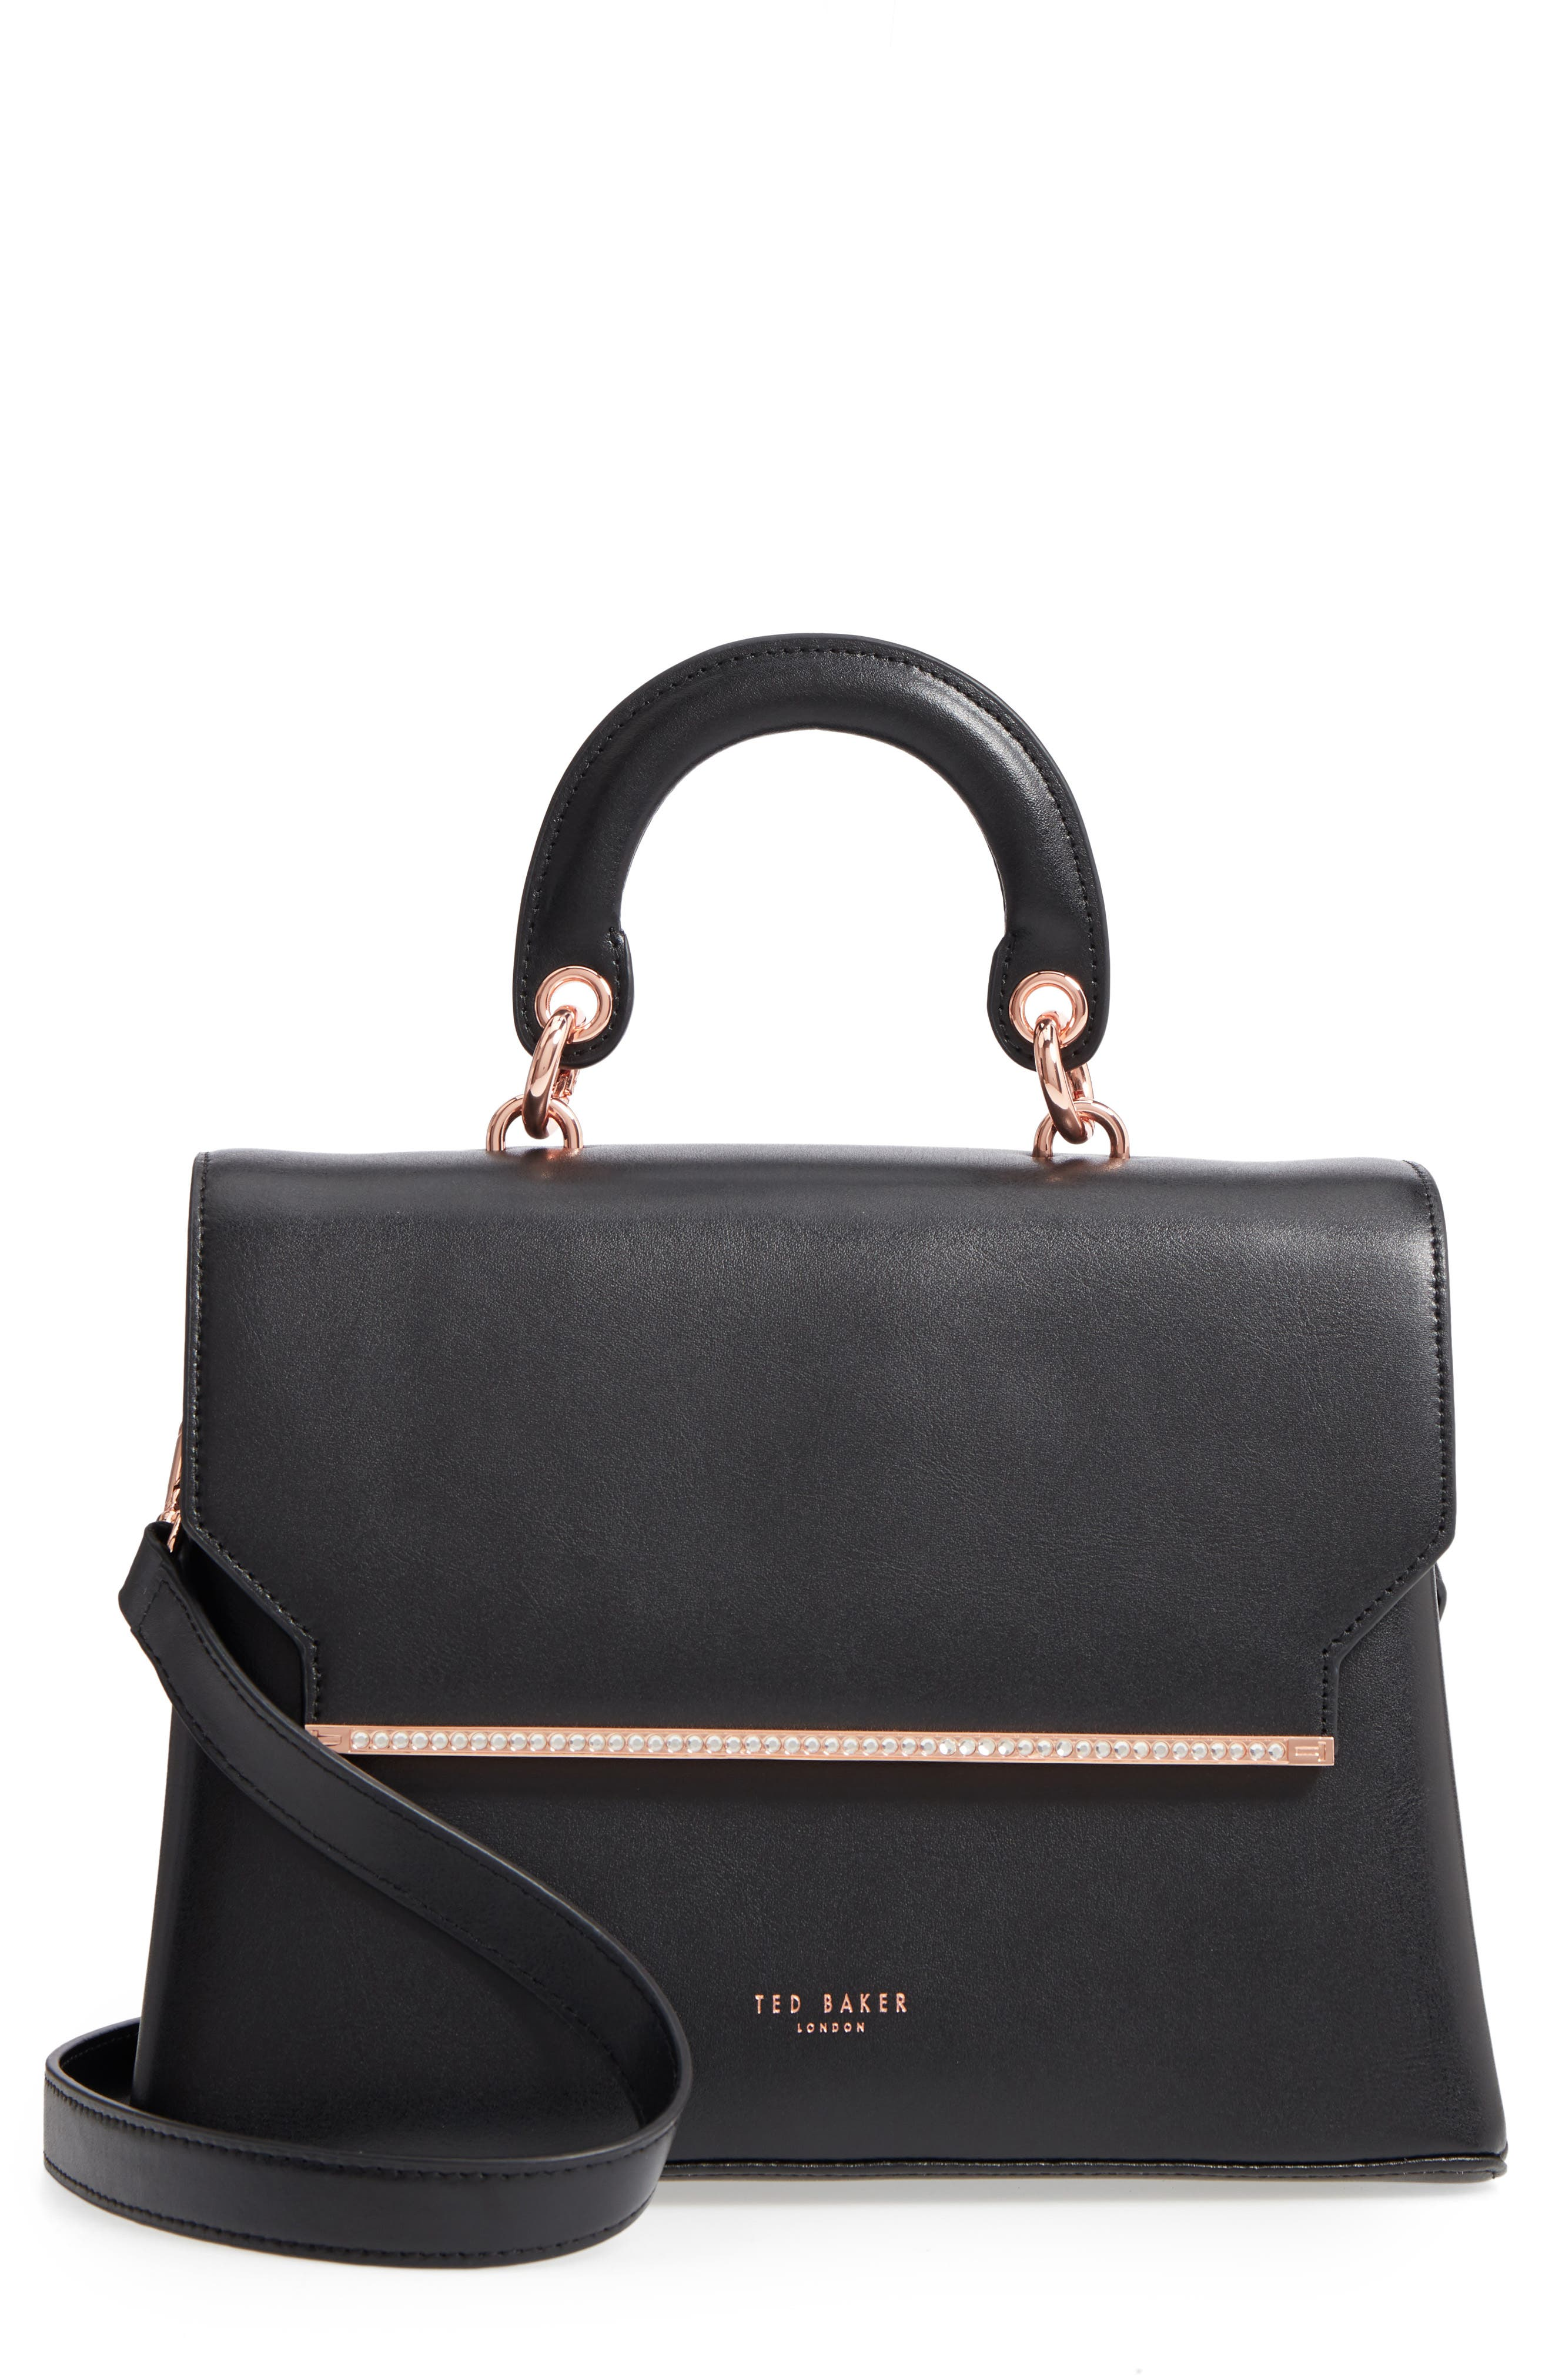 Crystal Bar Leather Top Handle Satchel,                         Main,                         color, 001